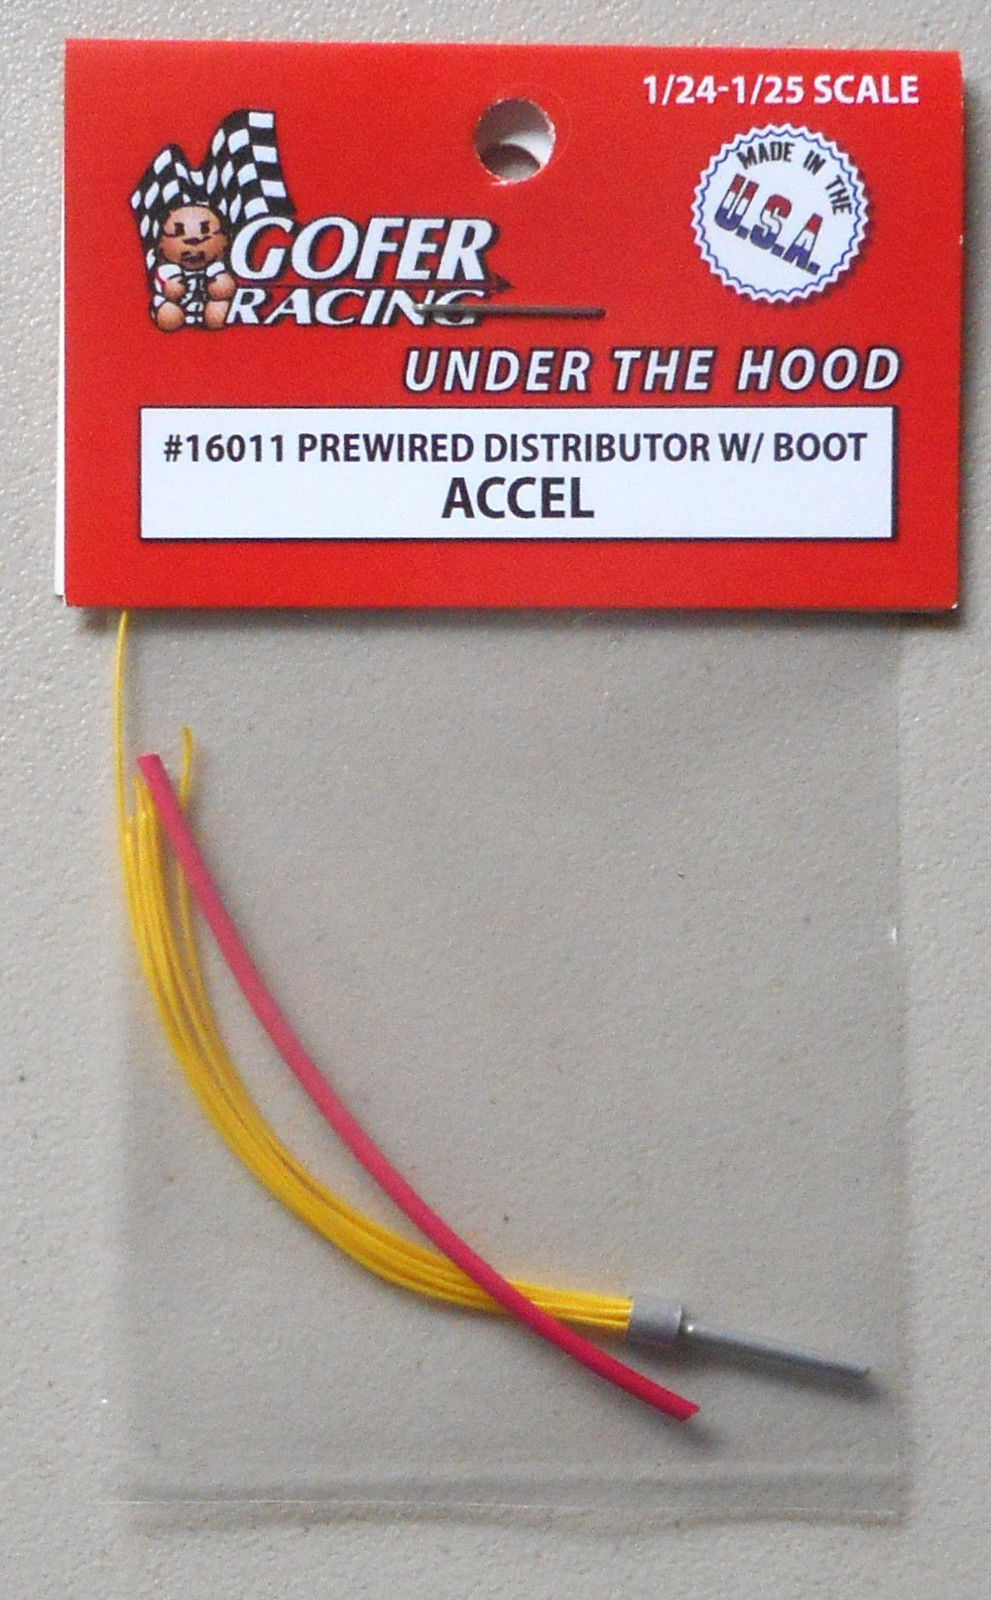 BROWN PREWIRED DISTRIBUTOR BOOT 1:24 1:25 GOFER RACING CAR MODEL ACCESSORY 16010